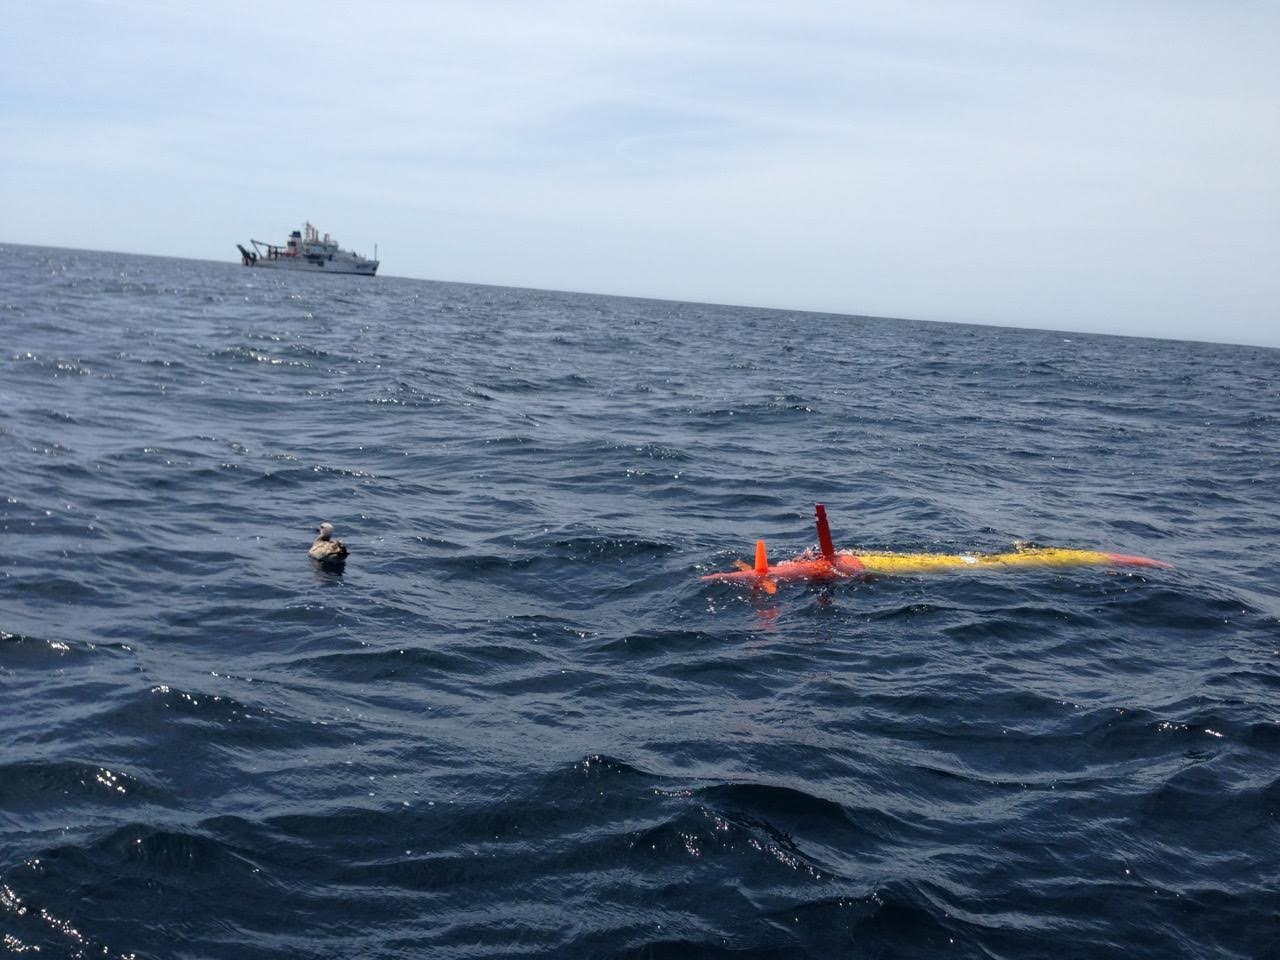 eAUV is deployed during April 2017 CalCOFI cruise. Image credit: NOAA